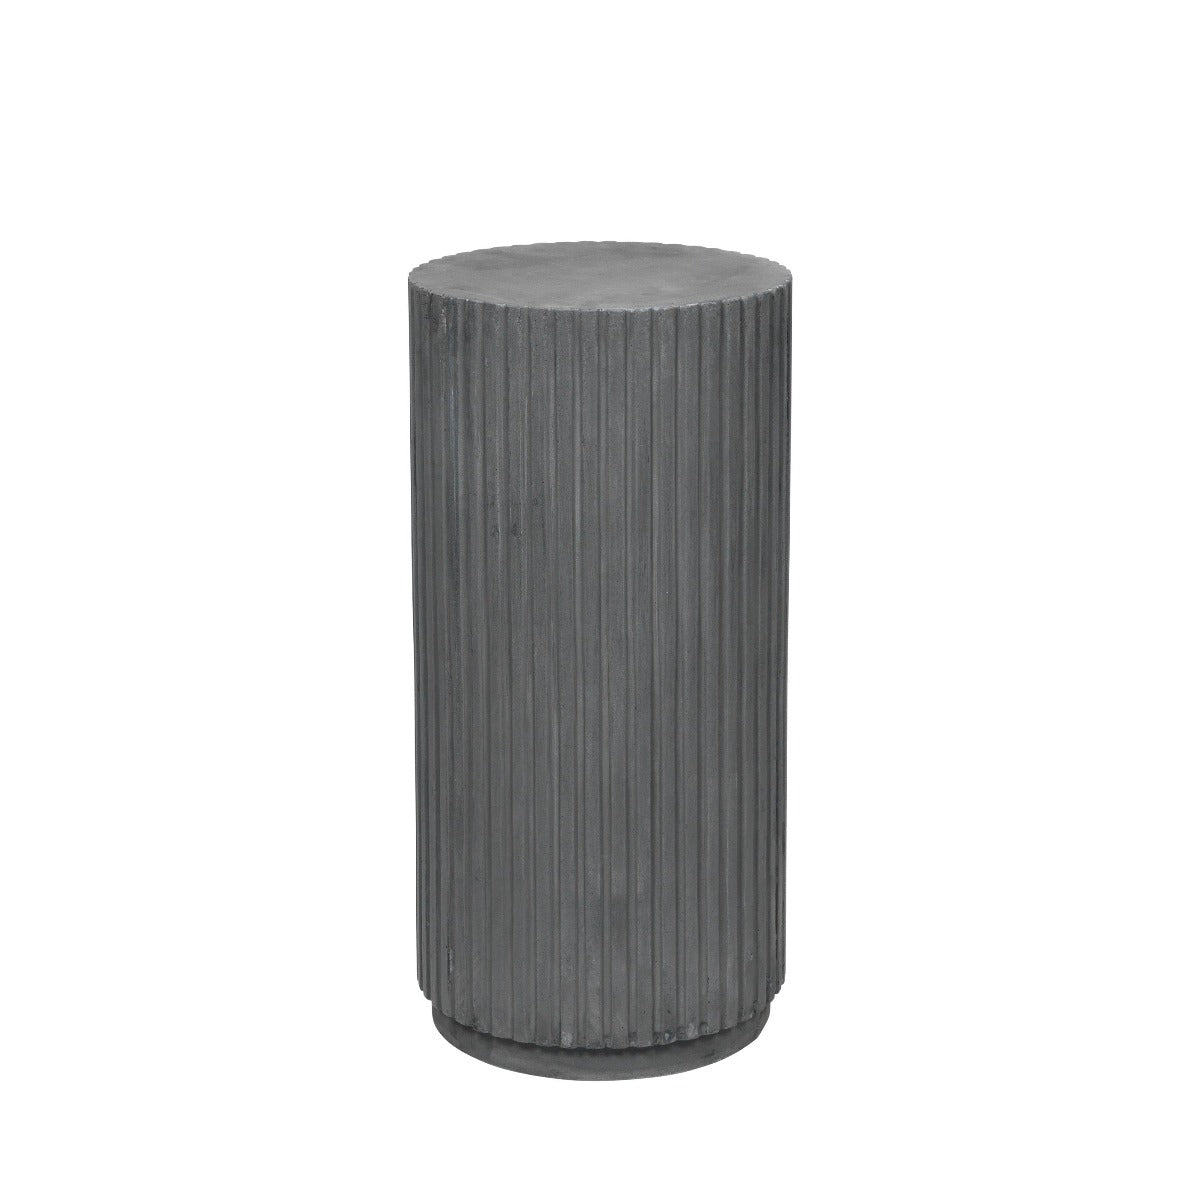 MEDIUM FIBERCLAY PODIUM - CHARCOAL I am Nomad